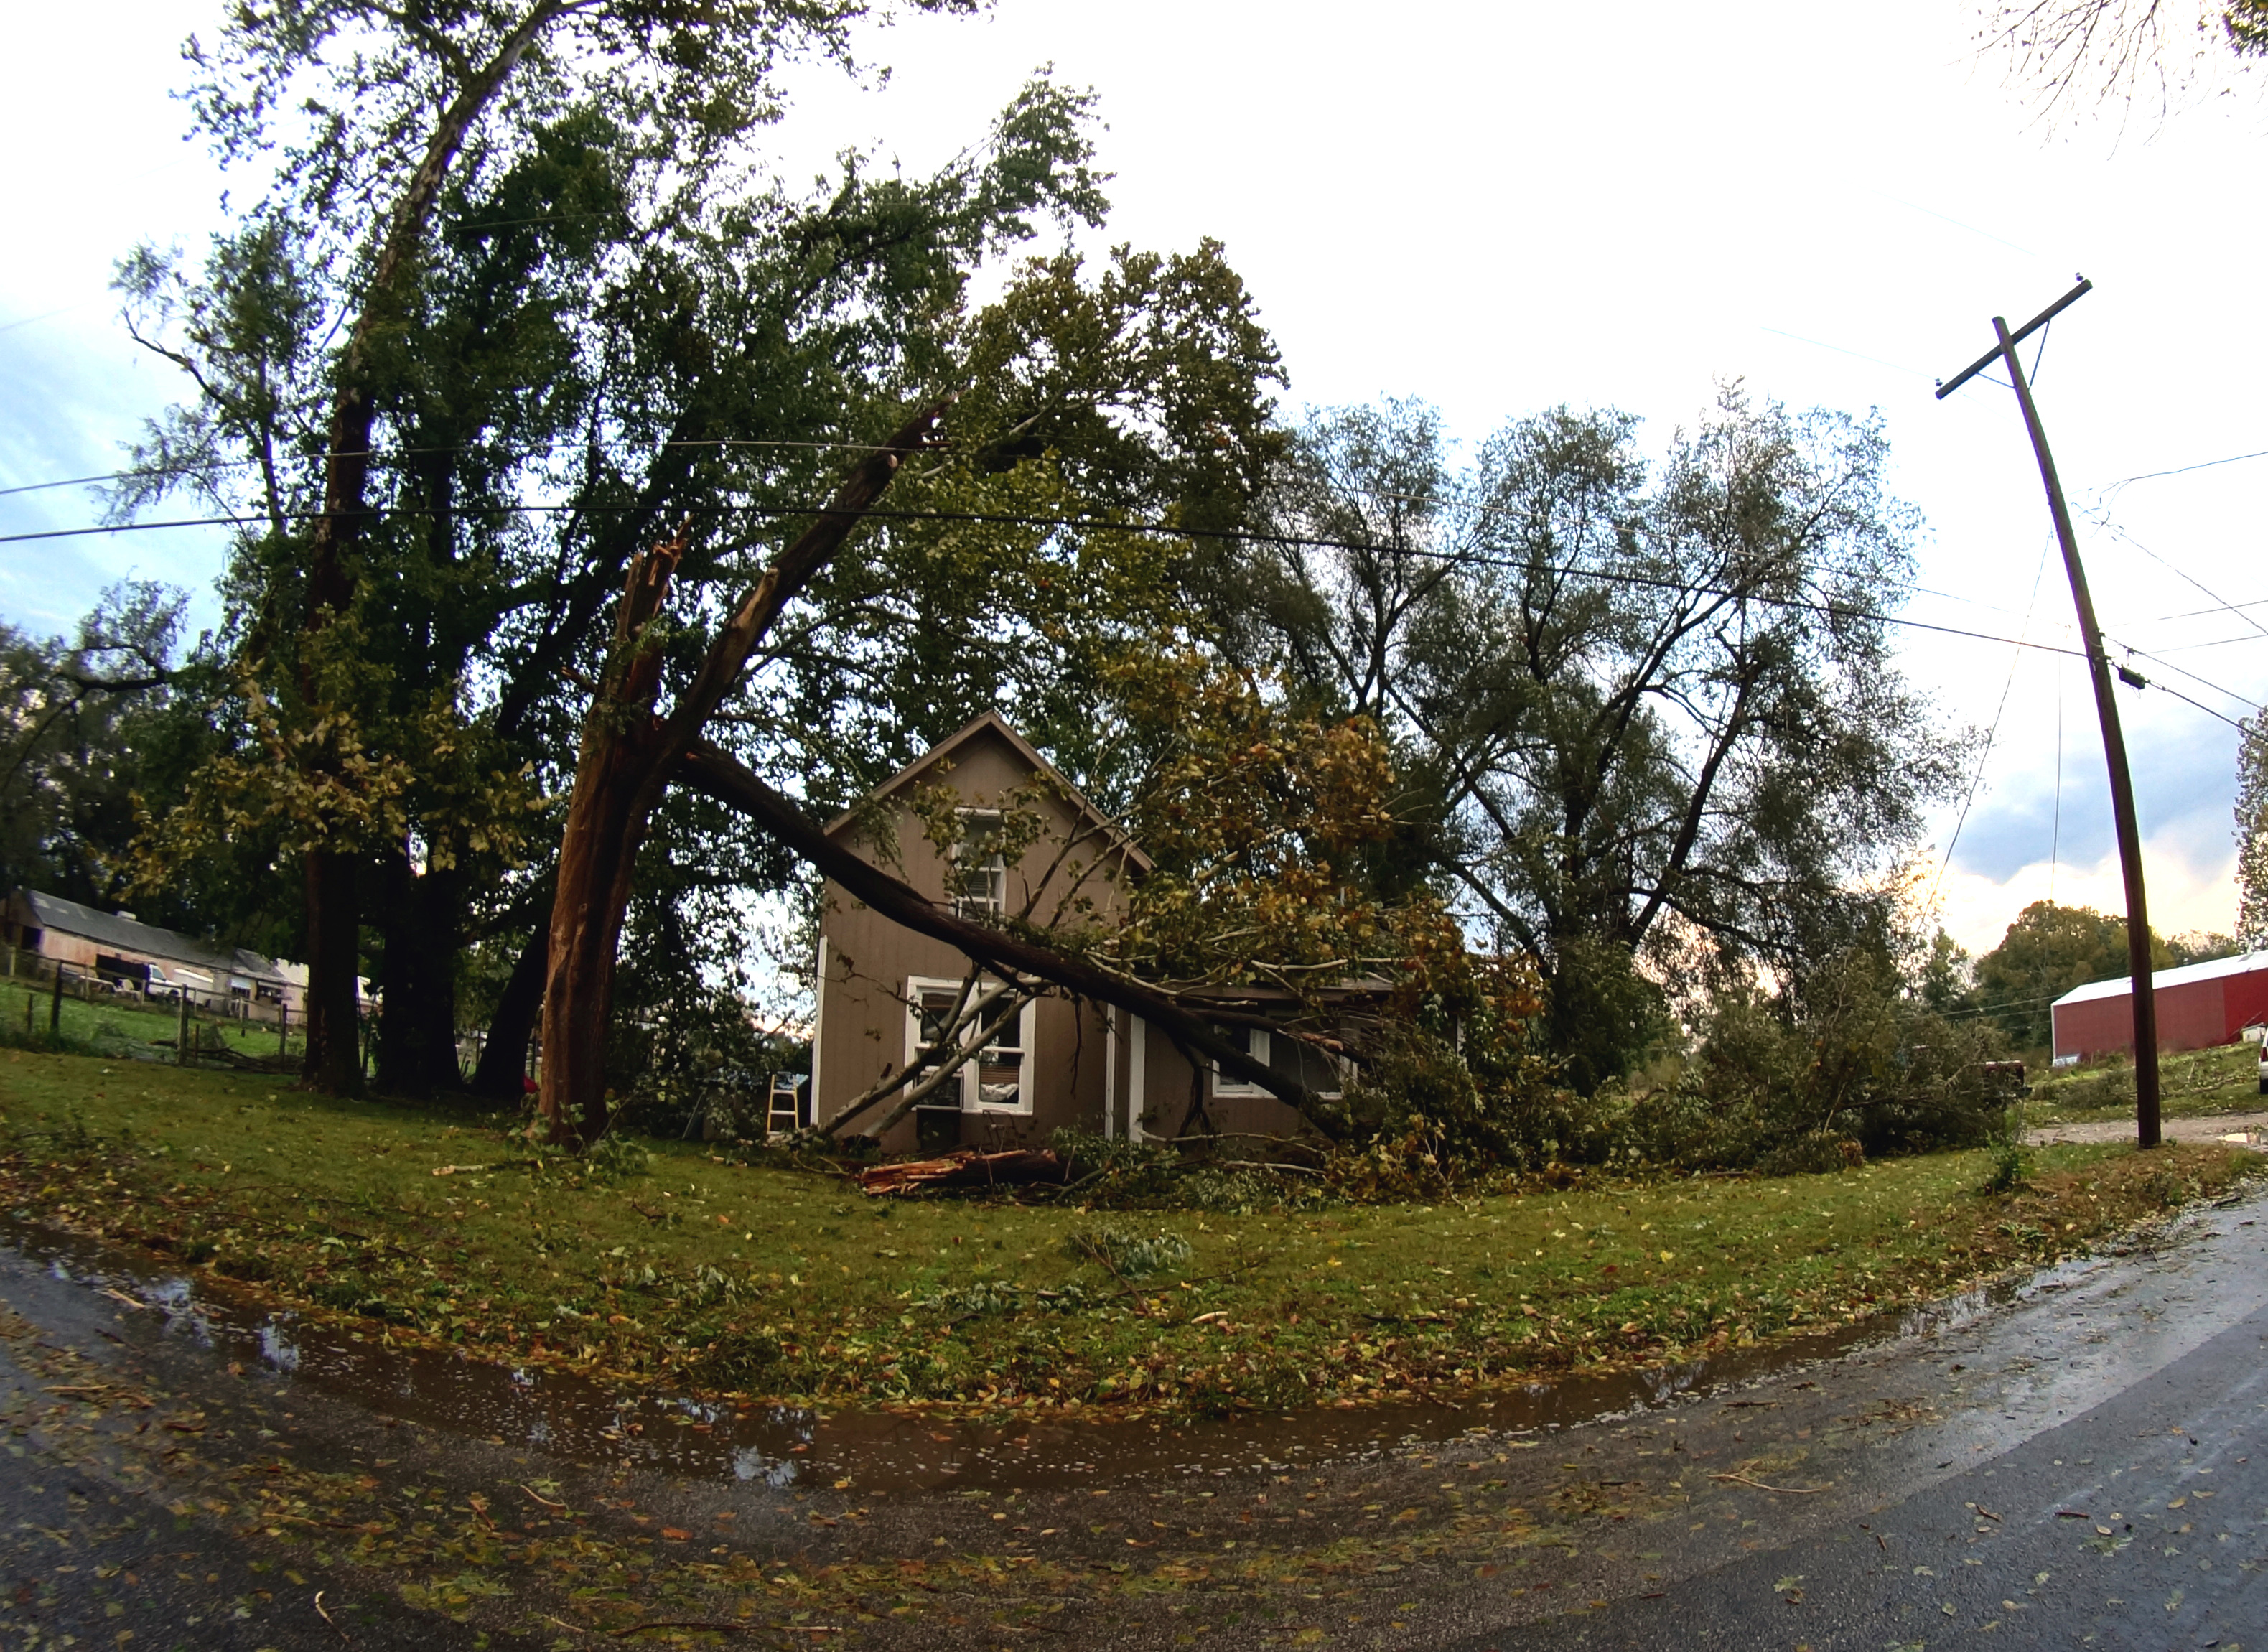 A large tree fell dangerously close to this house in North Lawrence. (Photo by Danny Mantyla)